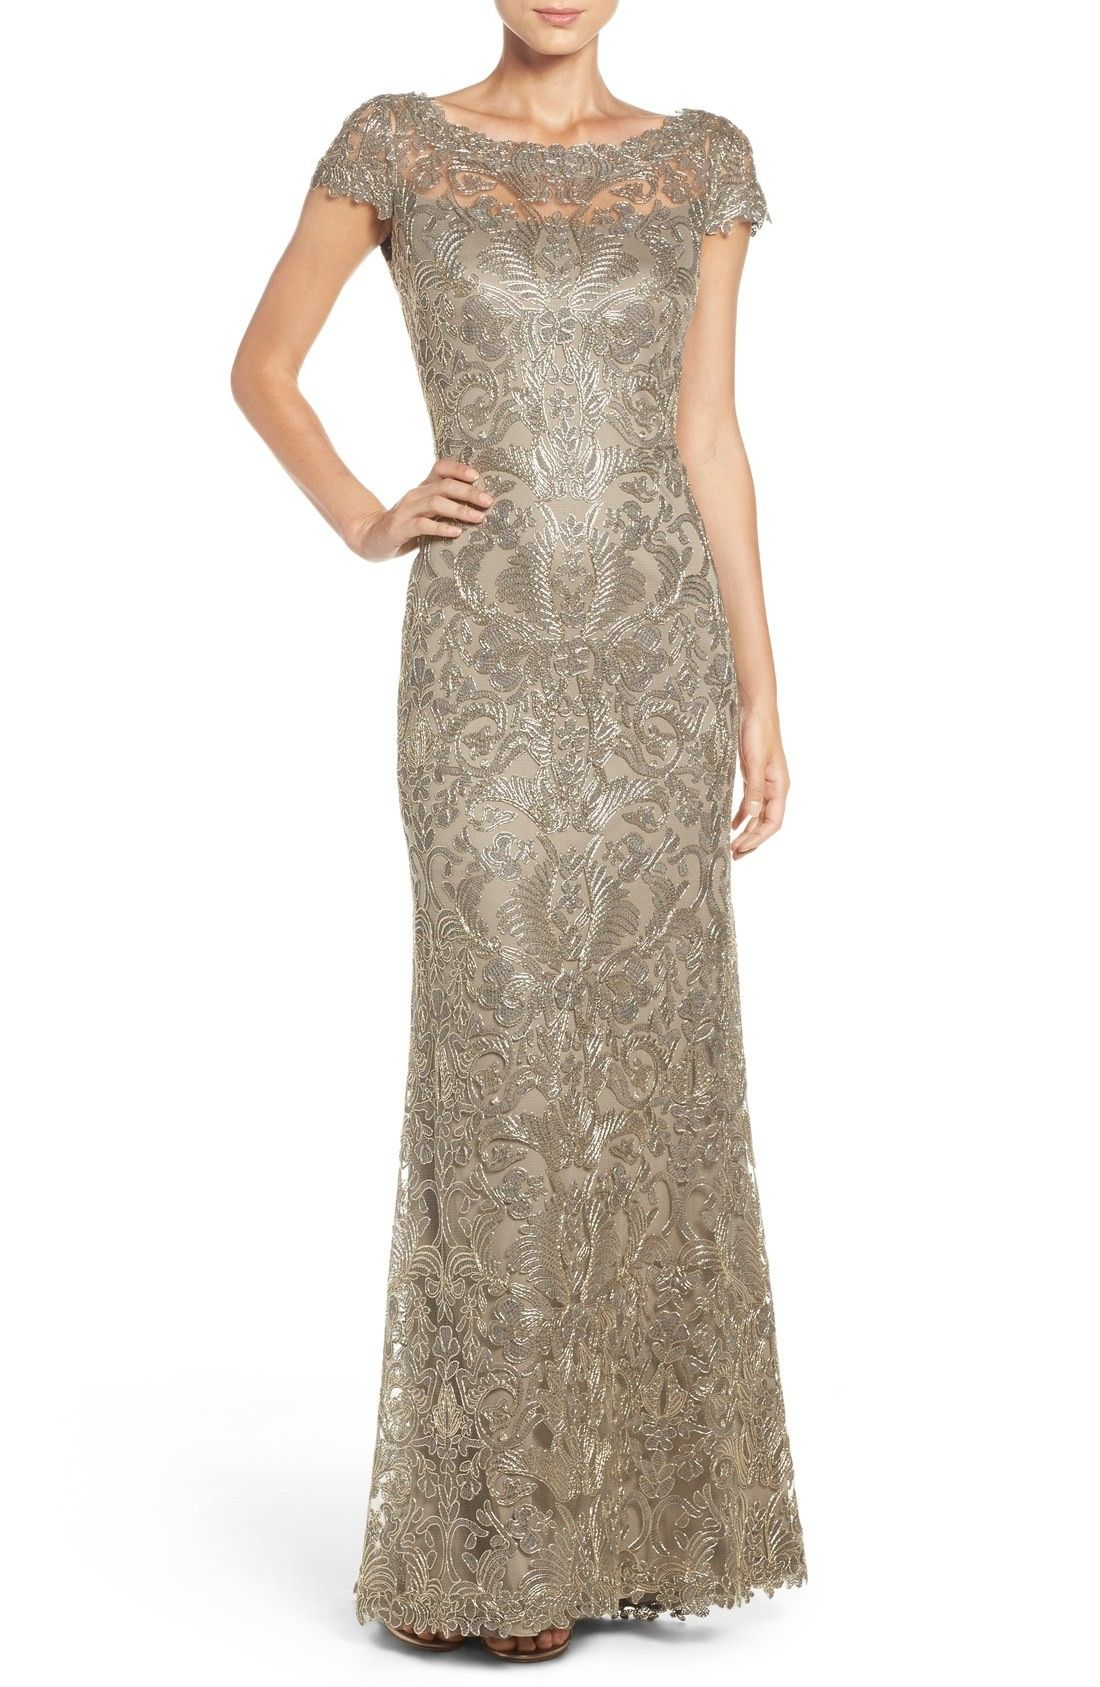 95edfc40 Shop TADASHI SHOJI Illusion Yoke Gown, Smoke Pearl, starting at $548.  Similar ones also available. On SALE now!